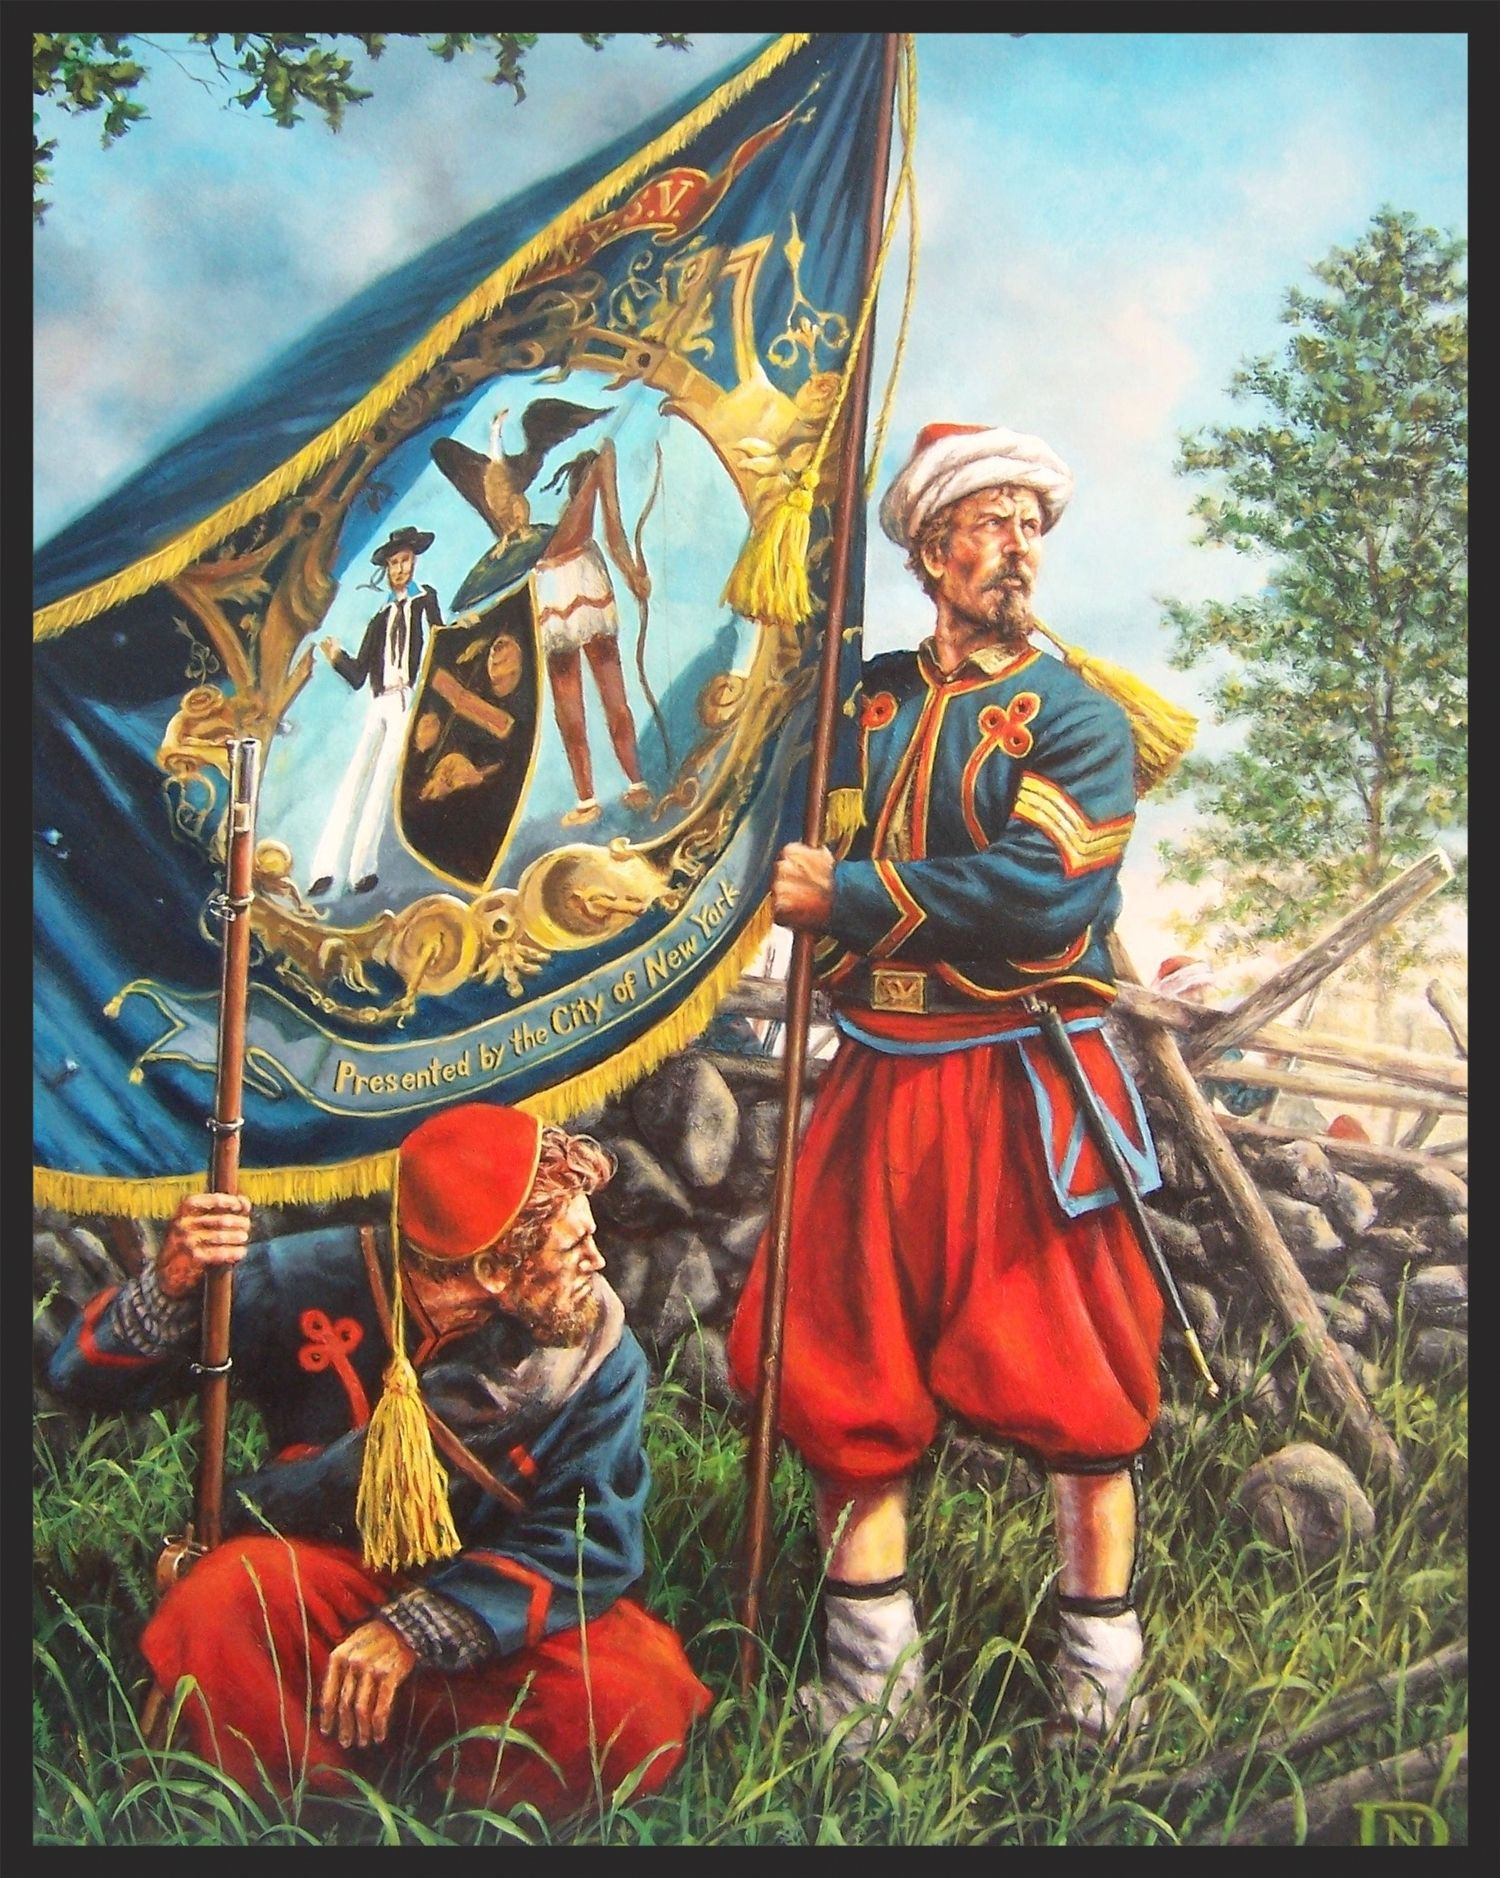 5th New York Zouaves Duryee S Zouaves Ca Print By Dan Nance